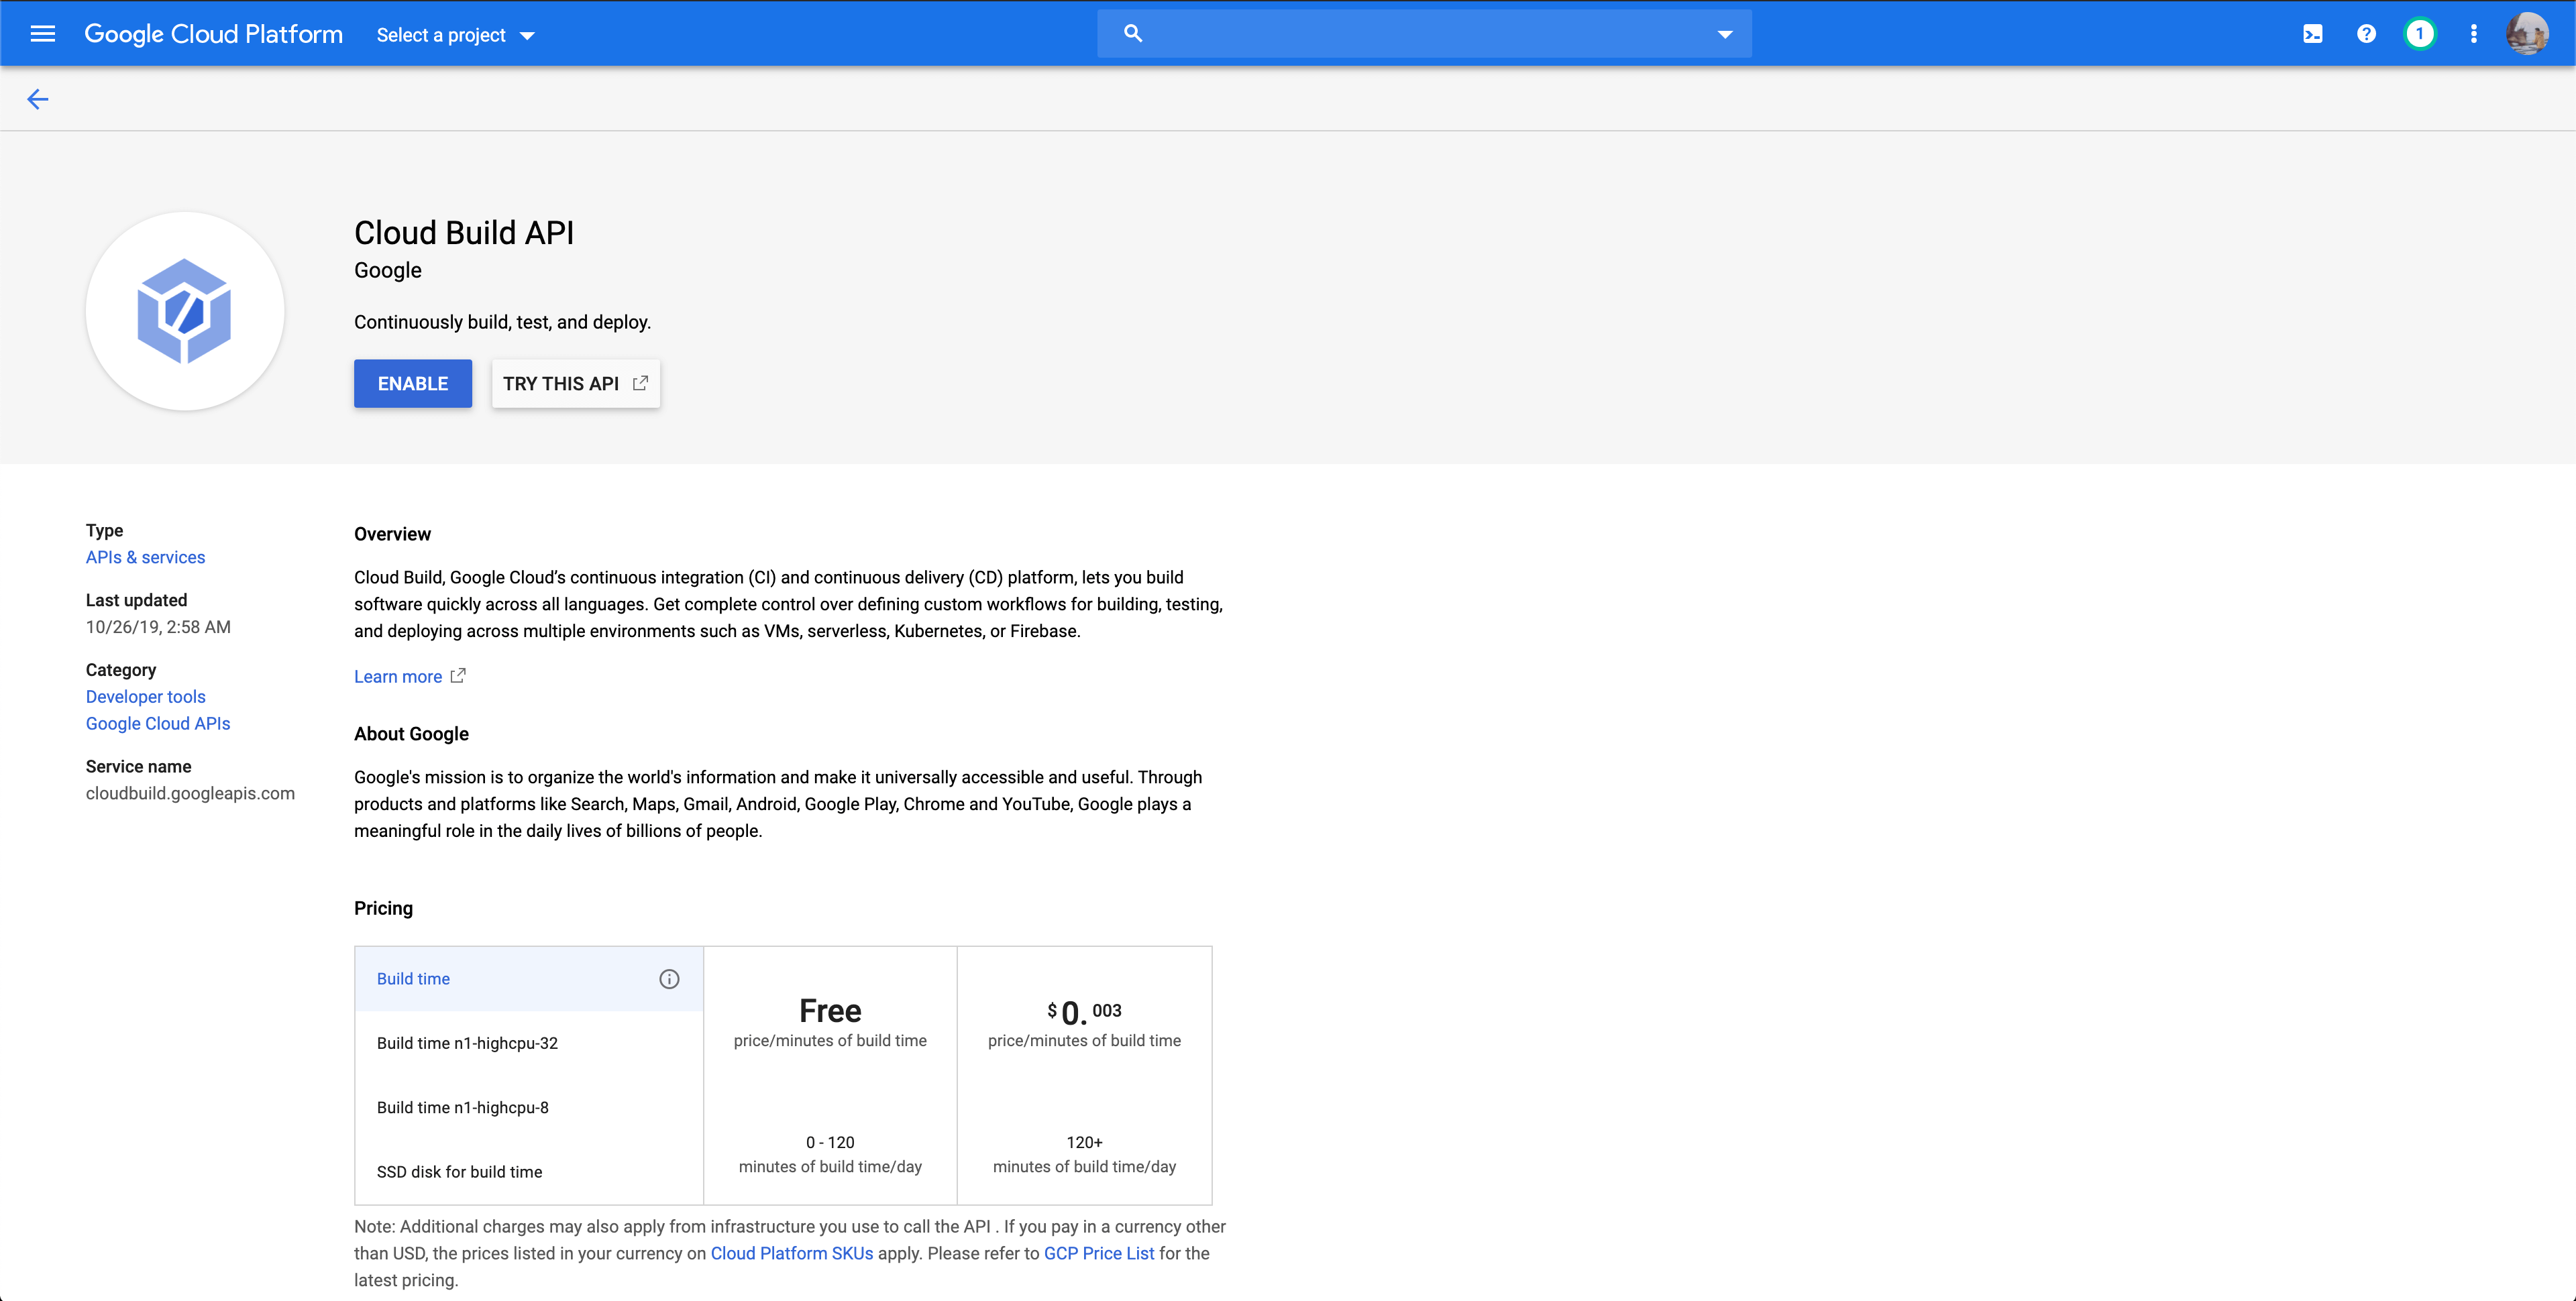 Google Cloud Build Details Page